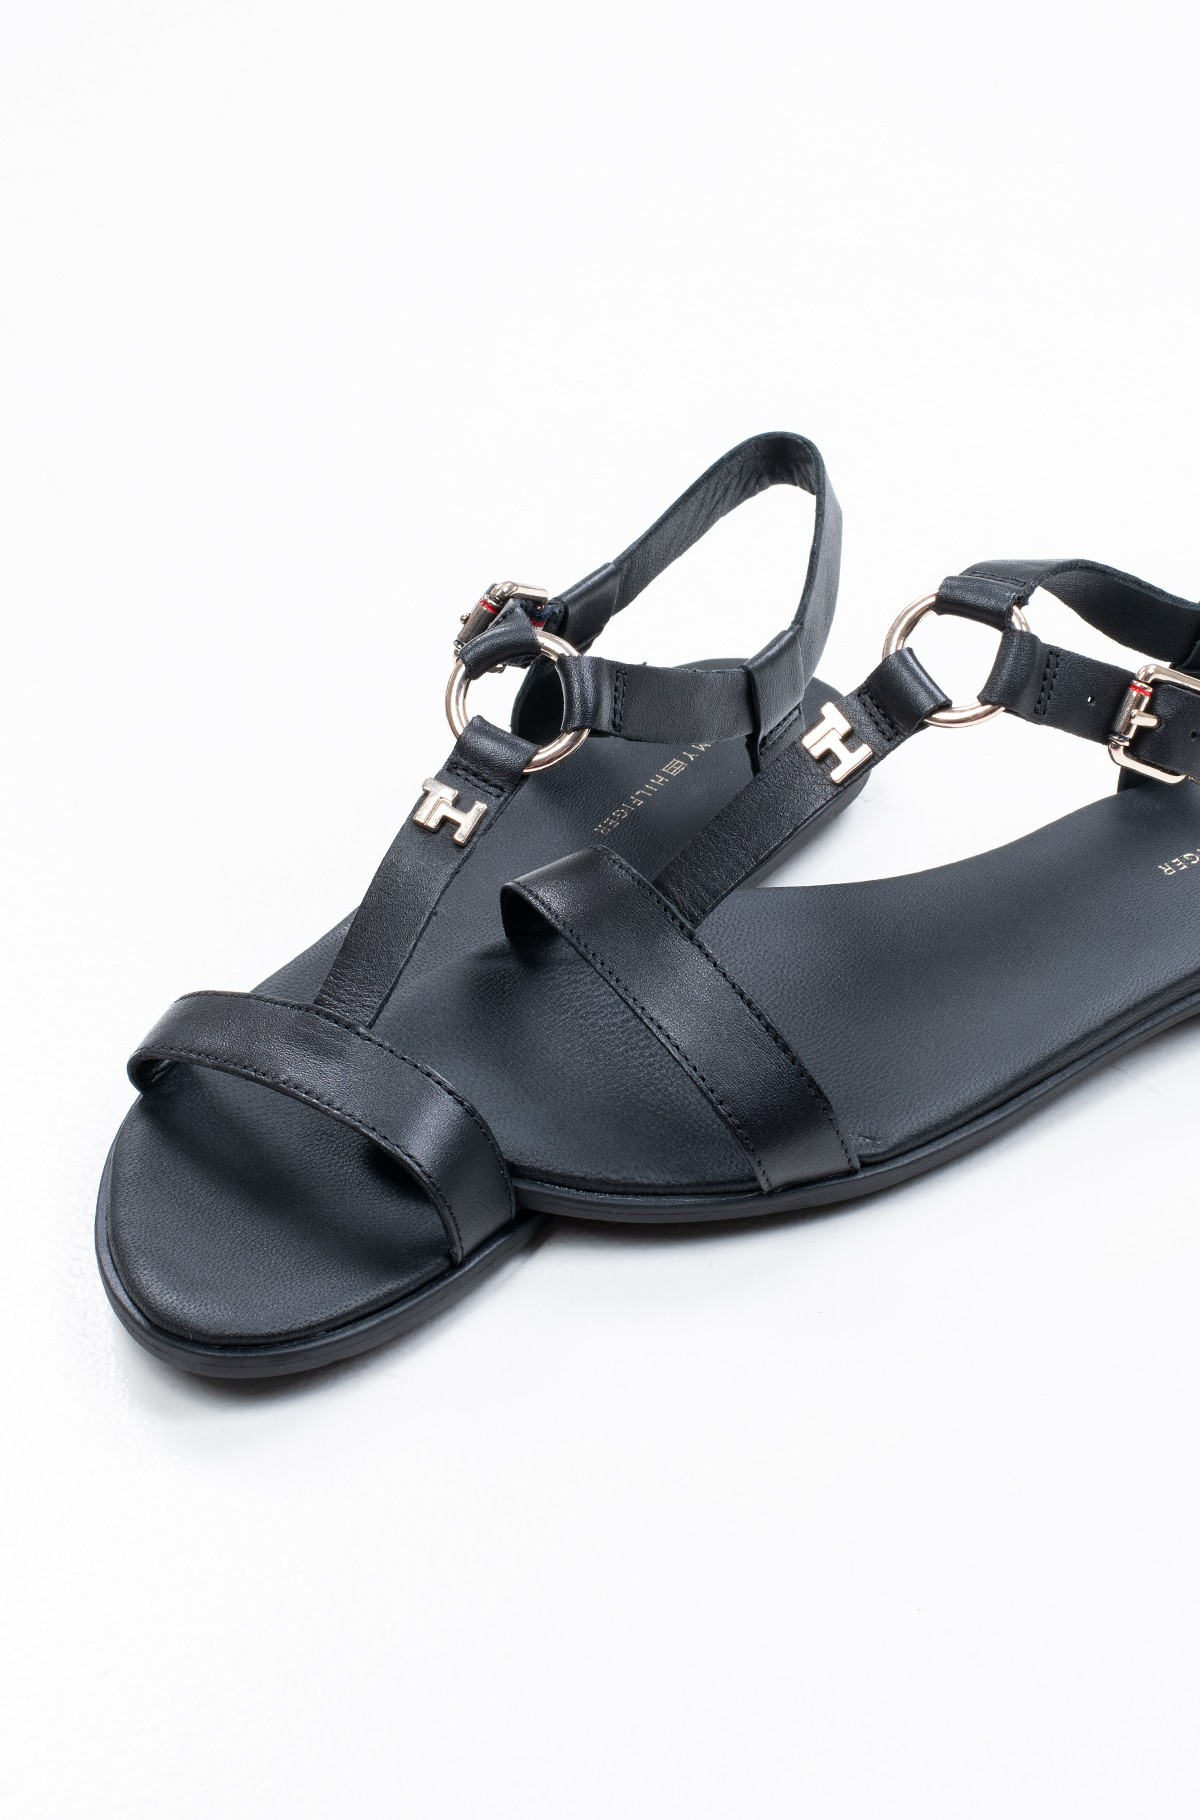 Basutės FEMININE LEATHER FLAT SANDAL-full-1